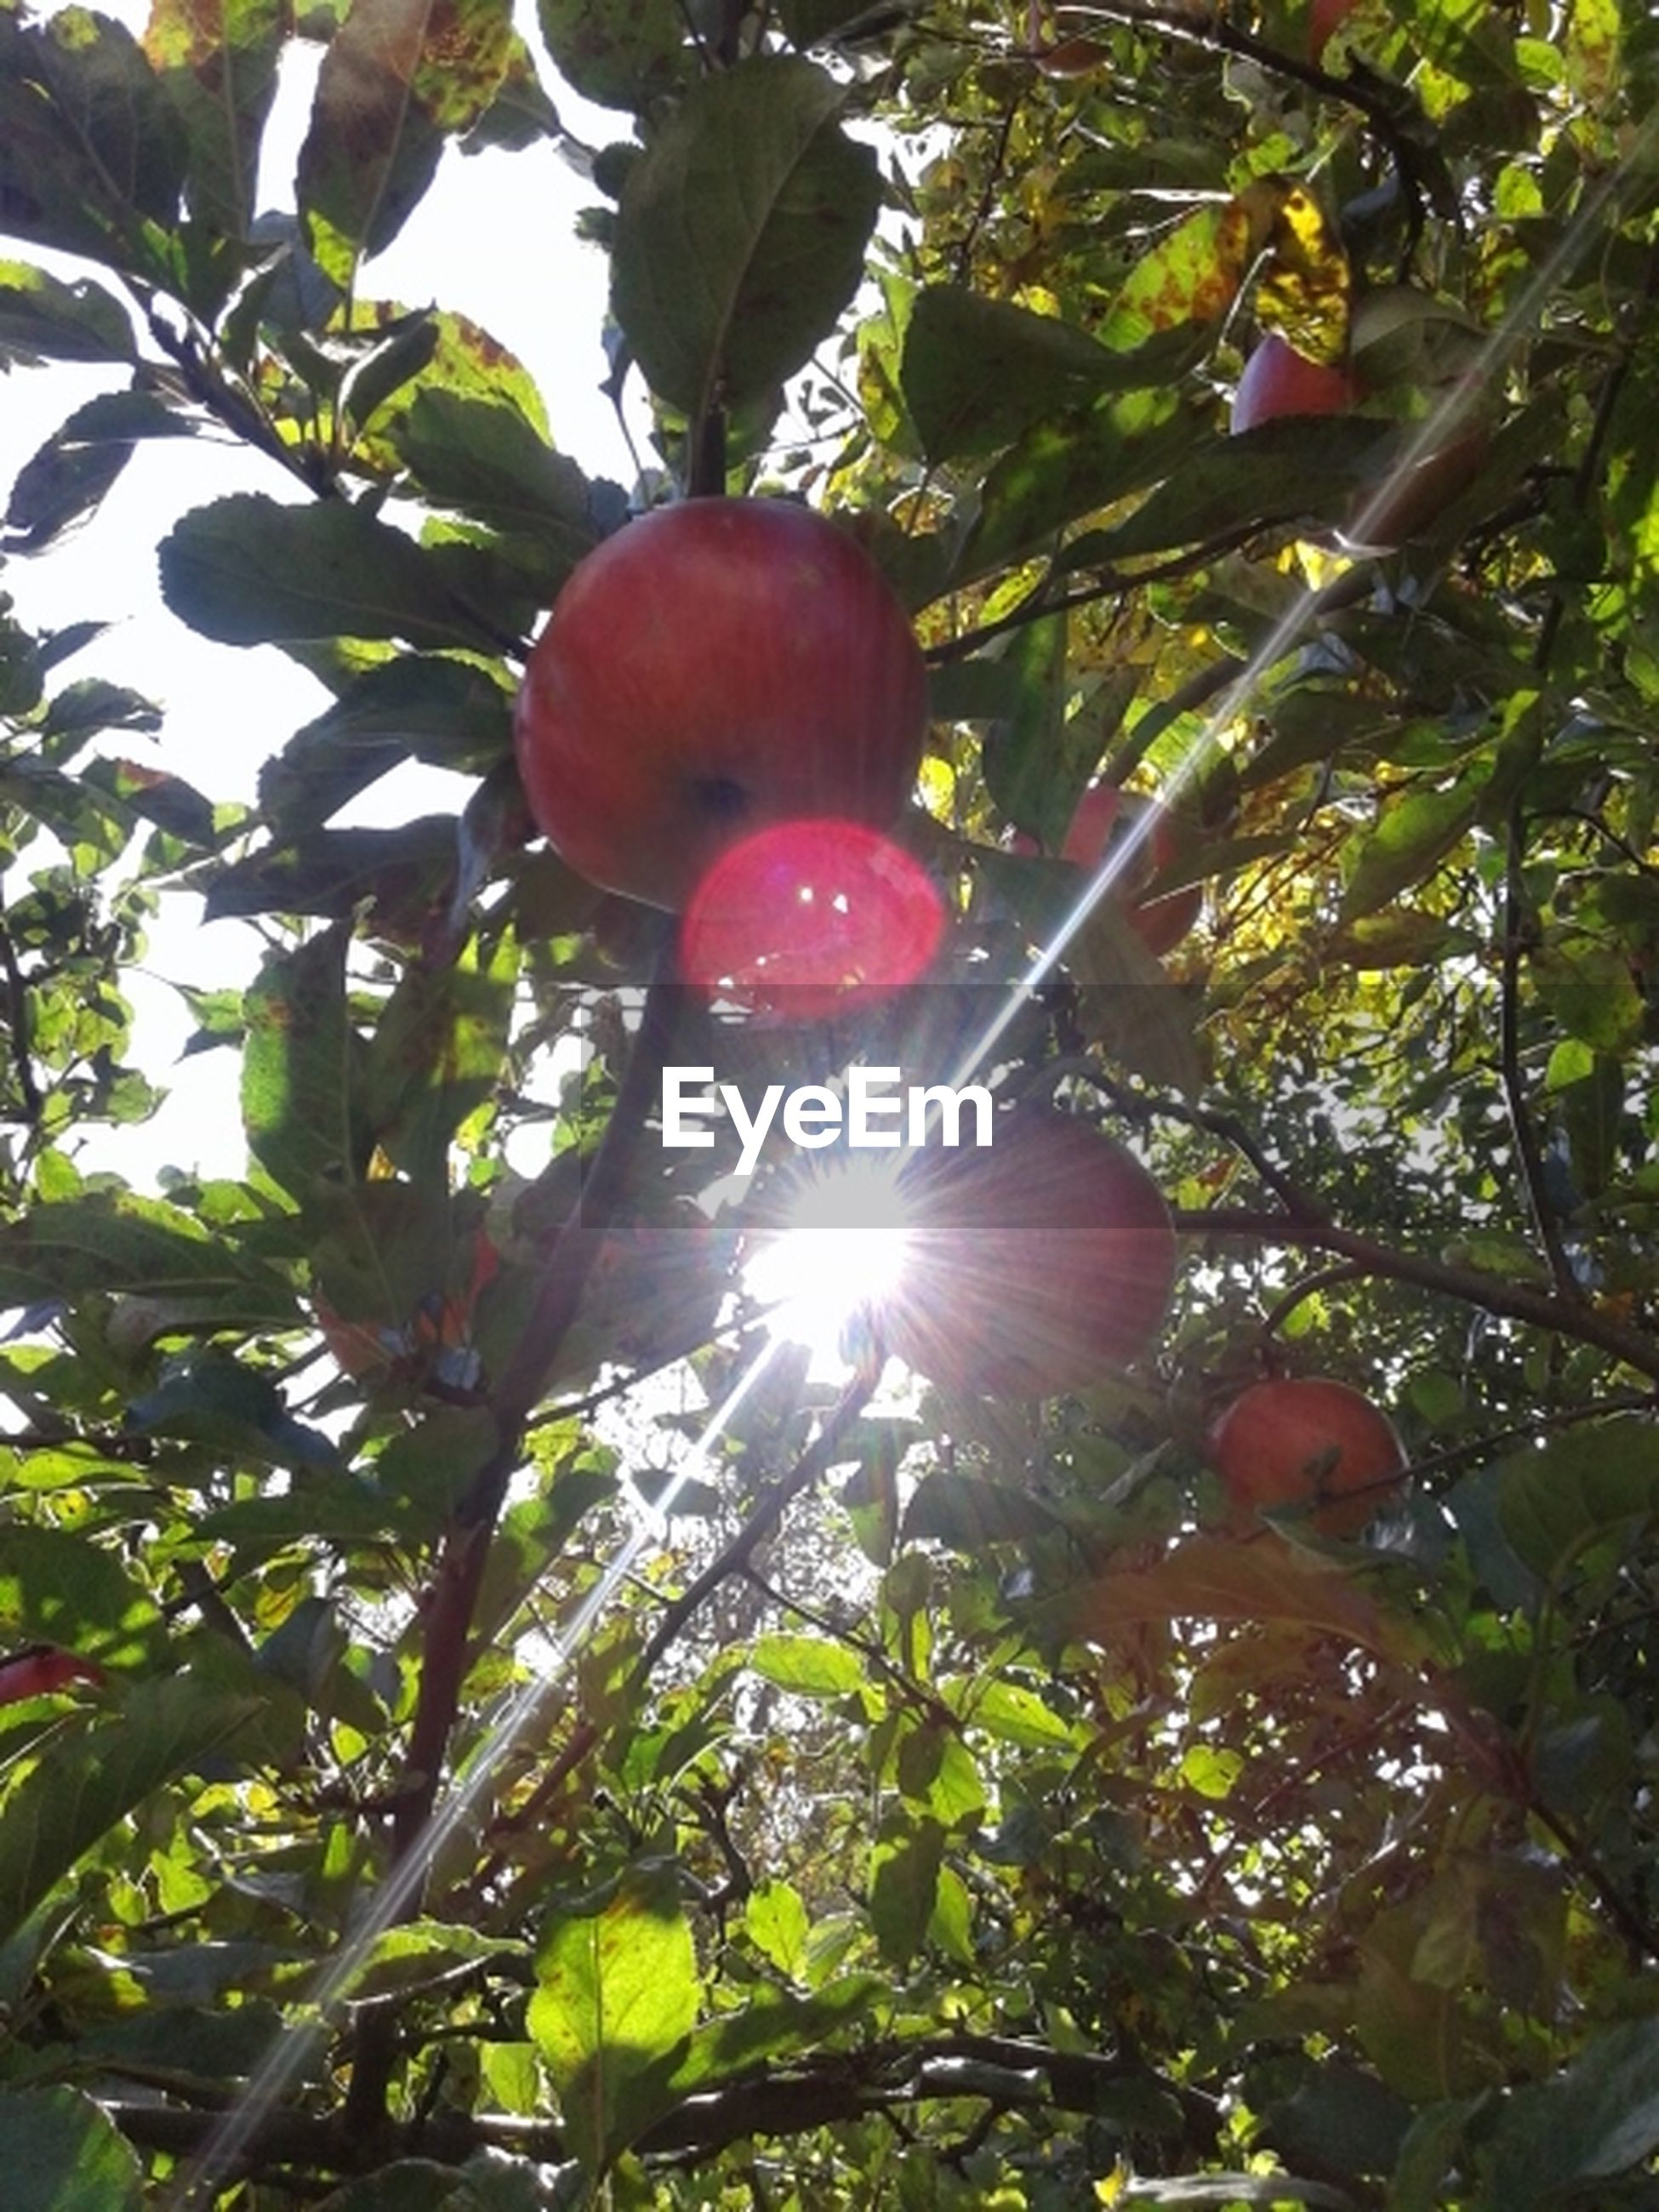 tree, low angle view, branch, sun, growth, fruit, leaf, sunlight, food and drink, nature, lens flare, sunbeam, beauty in nature, outdoors, freshness, green color, day, food, close-up, no people